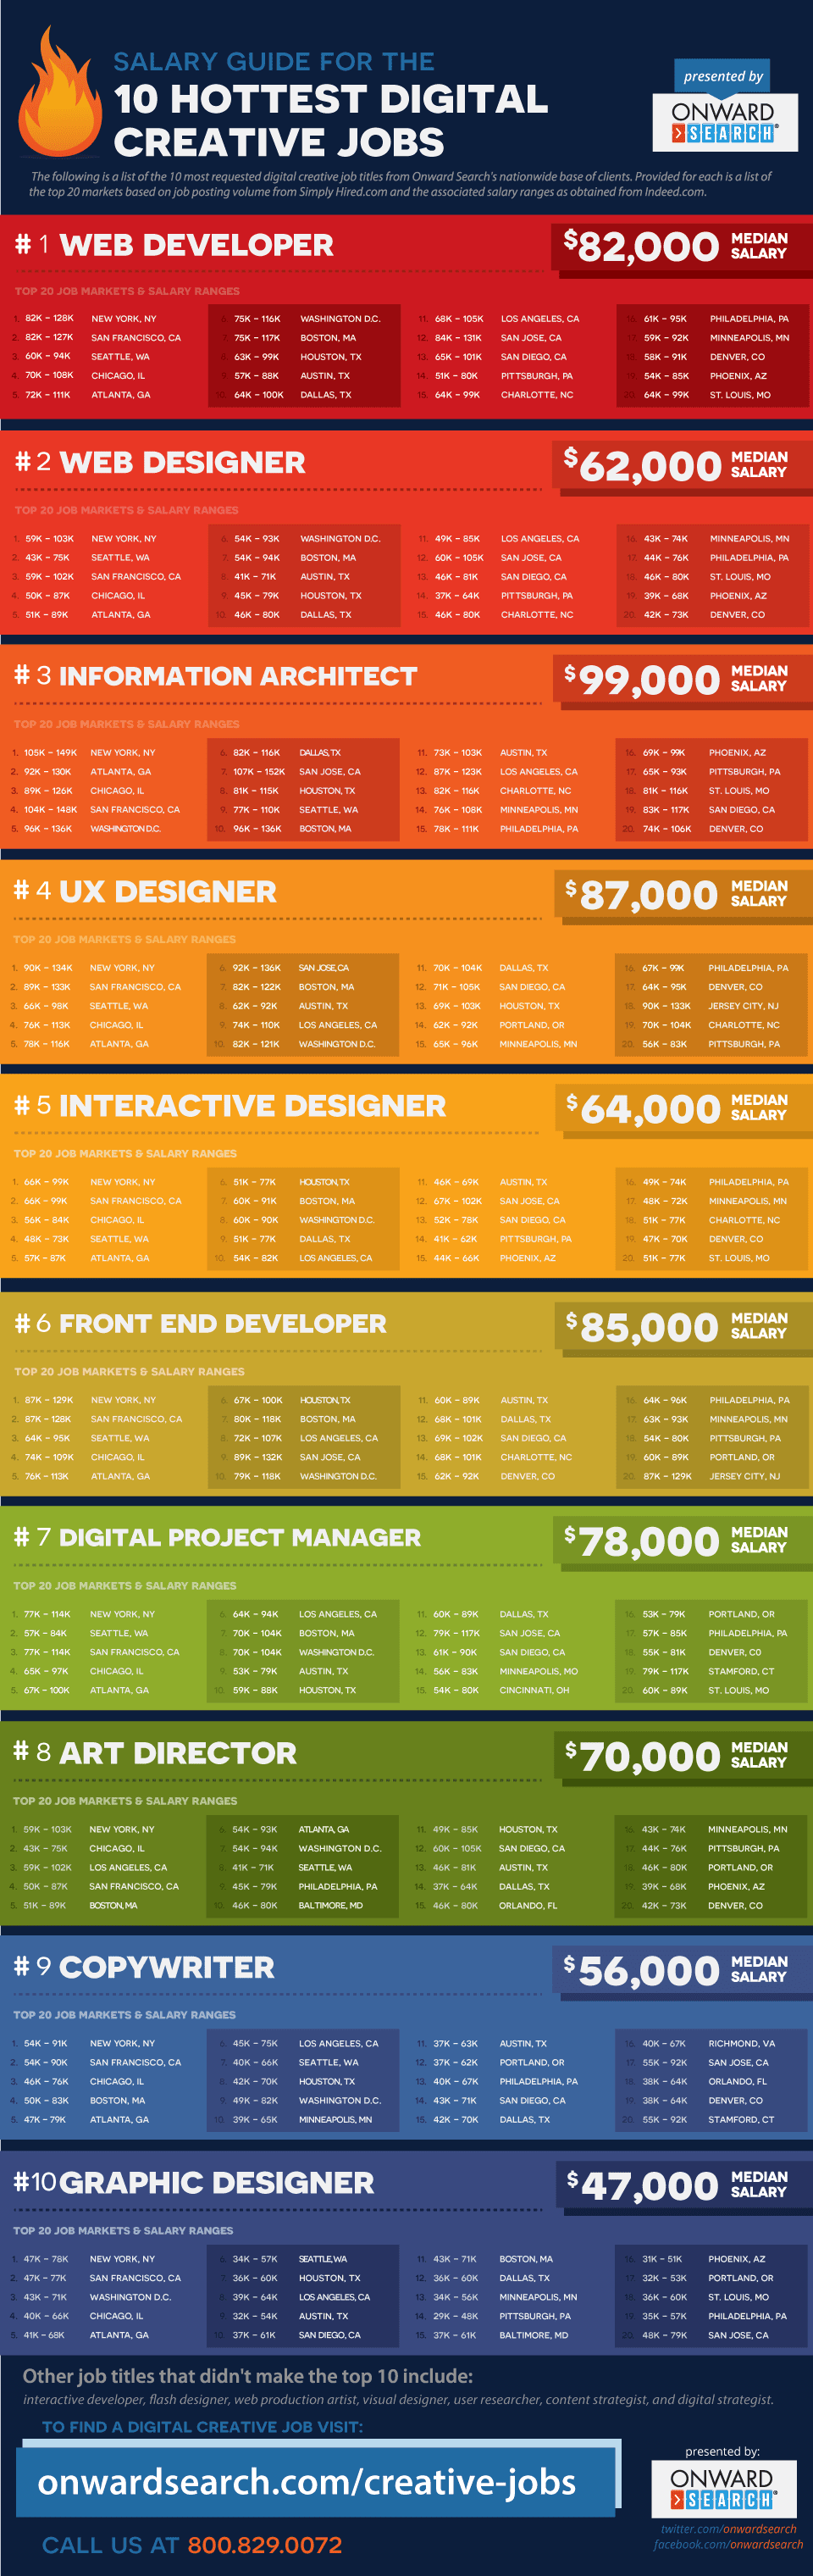 Digital and Creative Jobs Salary Guide | Onward Search